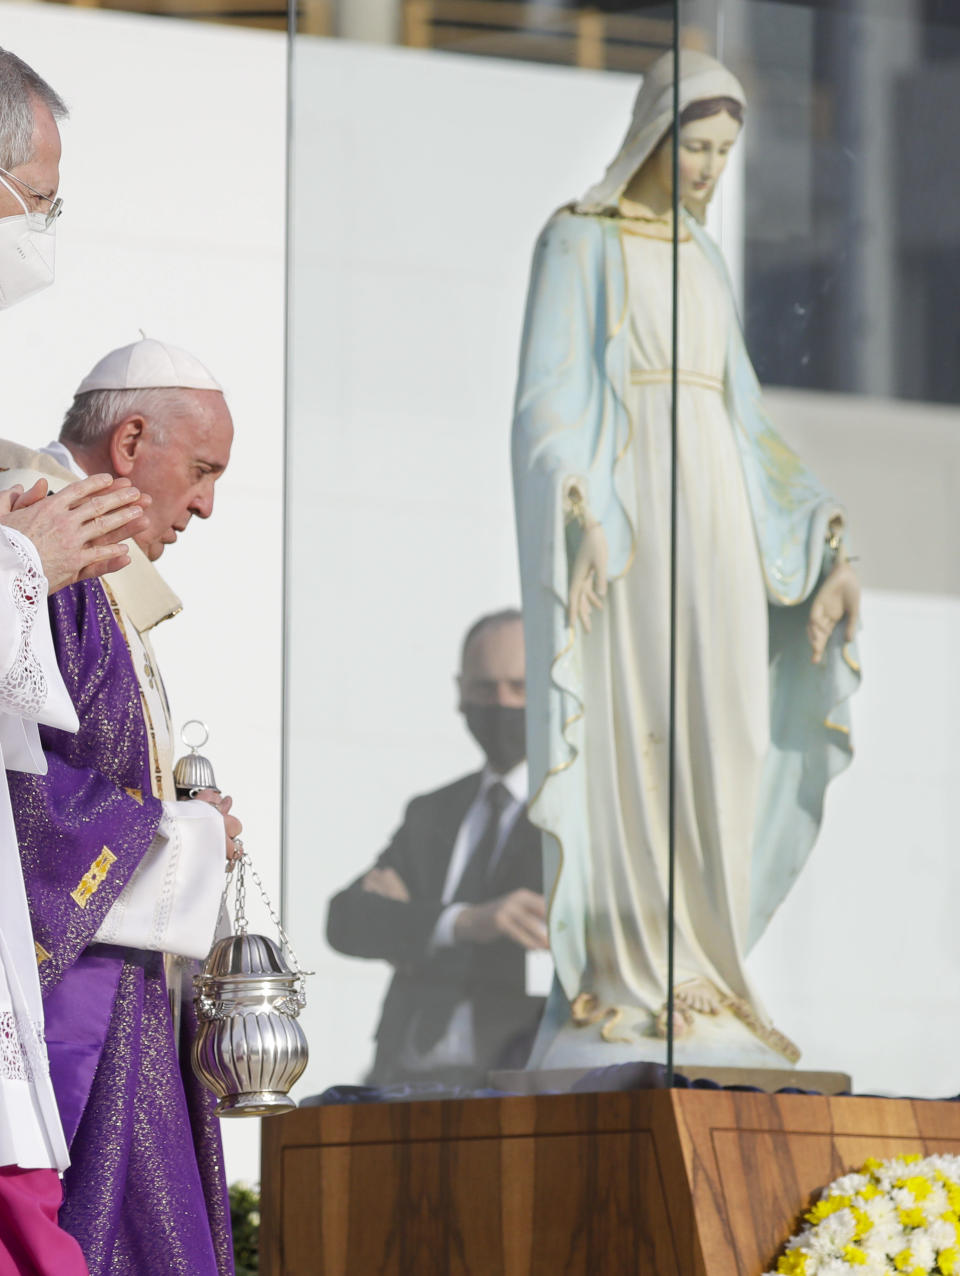 Pope Francis blesses a statue of the Virgin Mary that was vandalized by IS in the Christian village of Karemlash, 29 kilometers south east of Mosul, as he celebrates mass at the Franso Hariri Stadium in Irbil, Kurdistan Region of Iraq, Sunday, March 7, 2021. The statue is being restaurated after it was beheaded and its hands chopped during the occupation by the IS of the Nineveh Plains between 2014 and 2017. (AP Photo/Andrew Medichini)